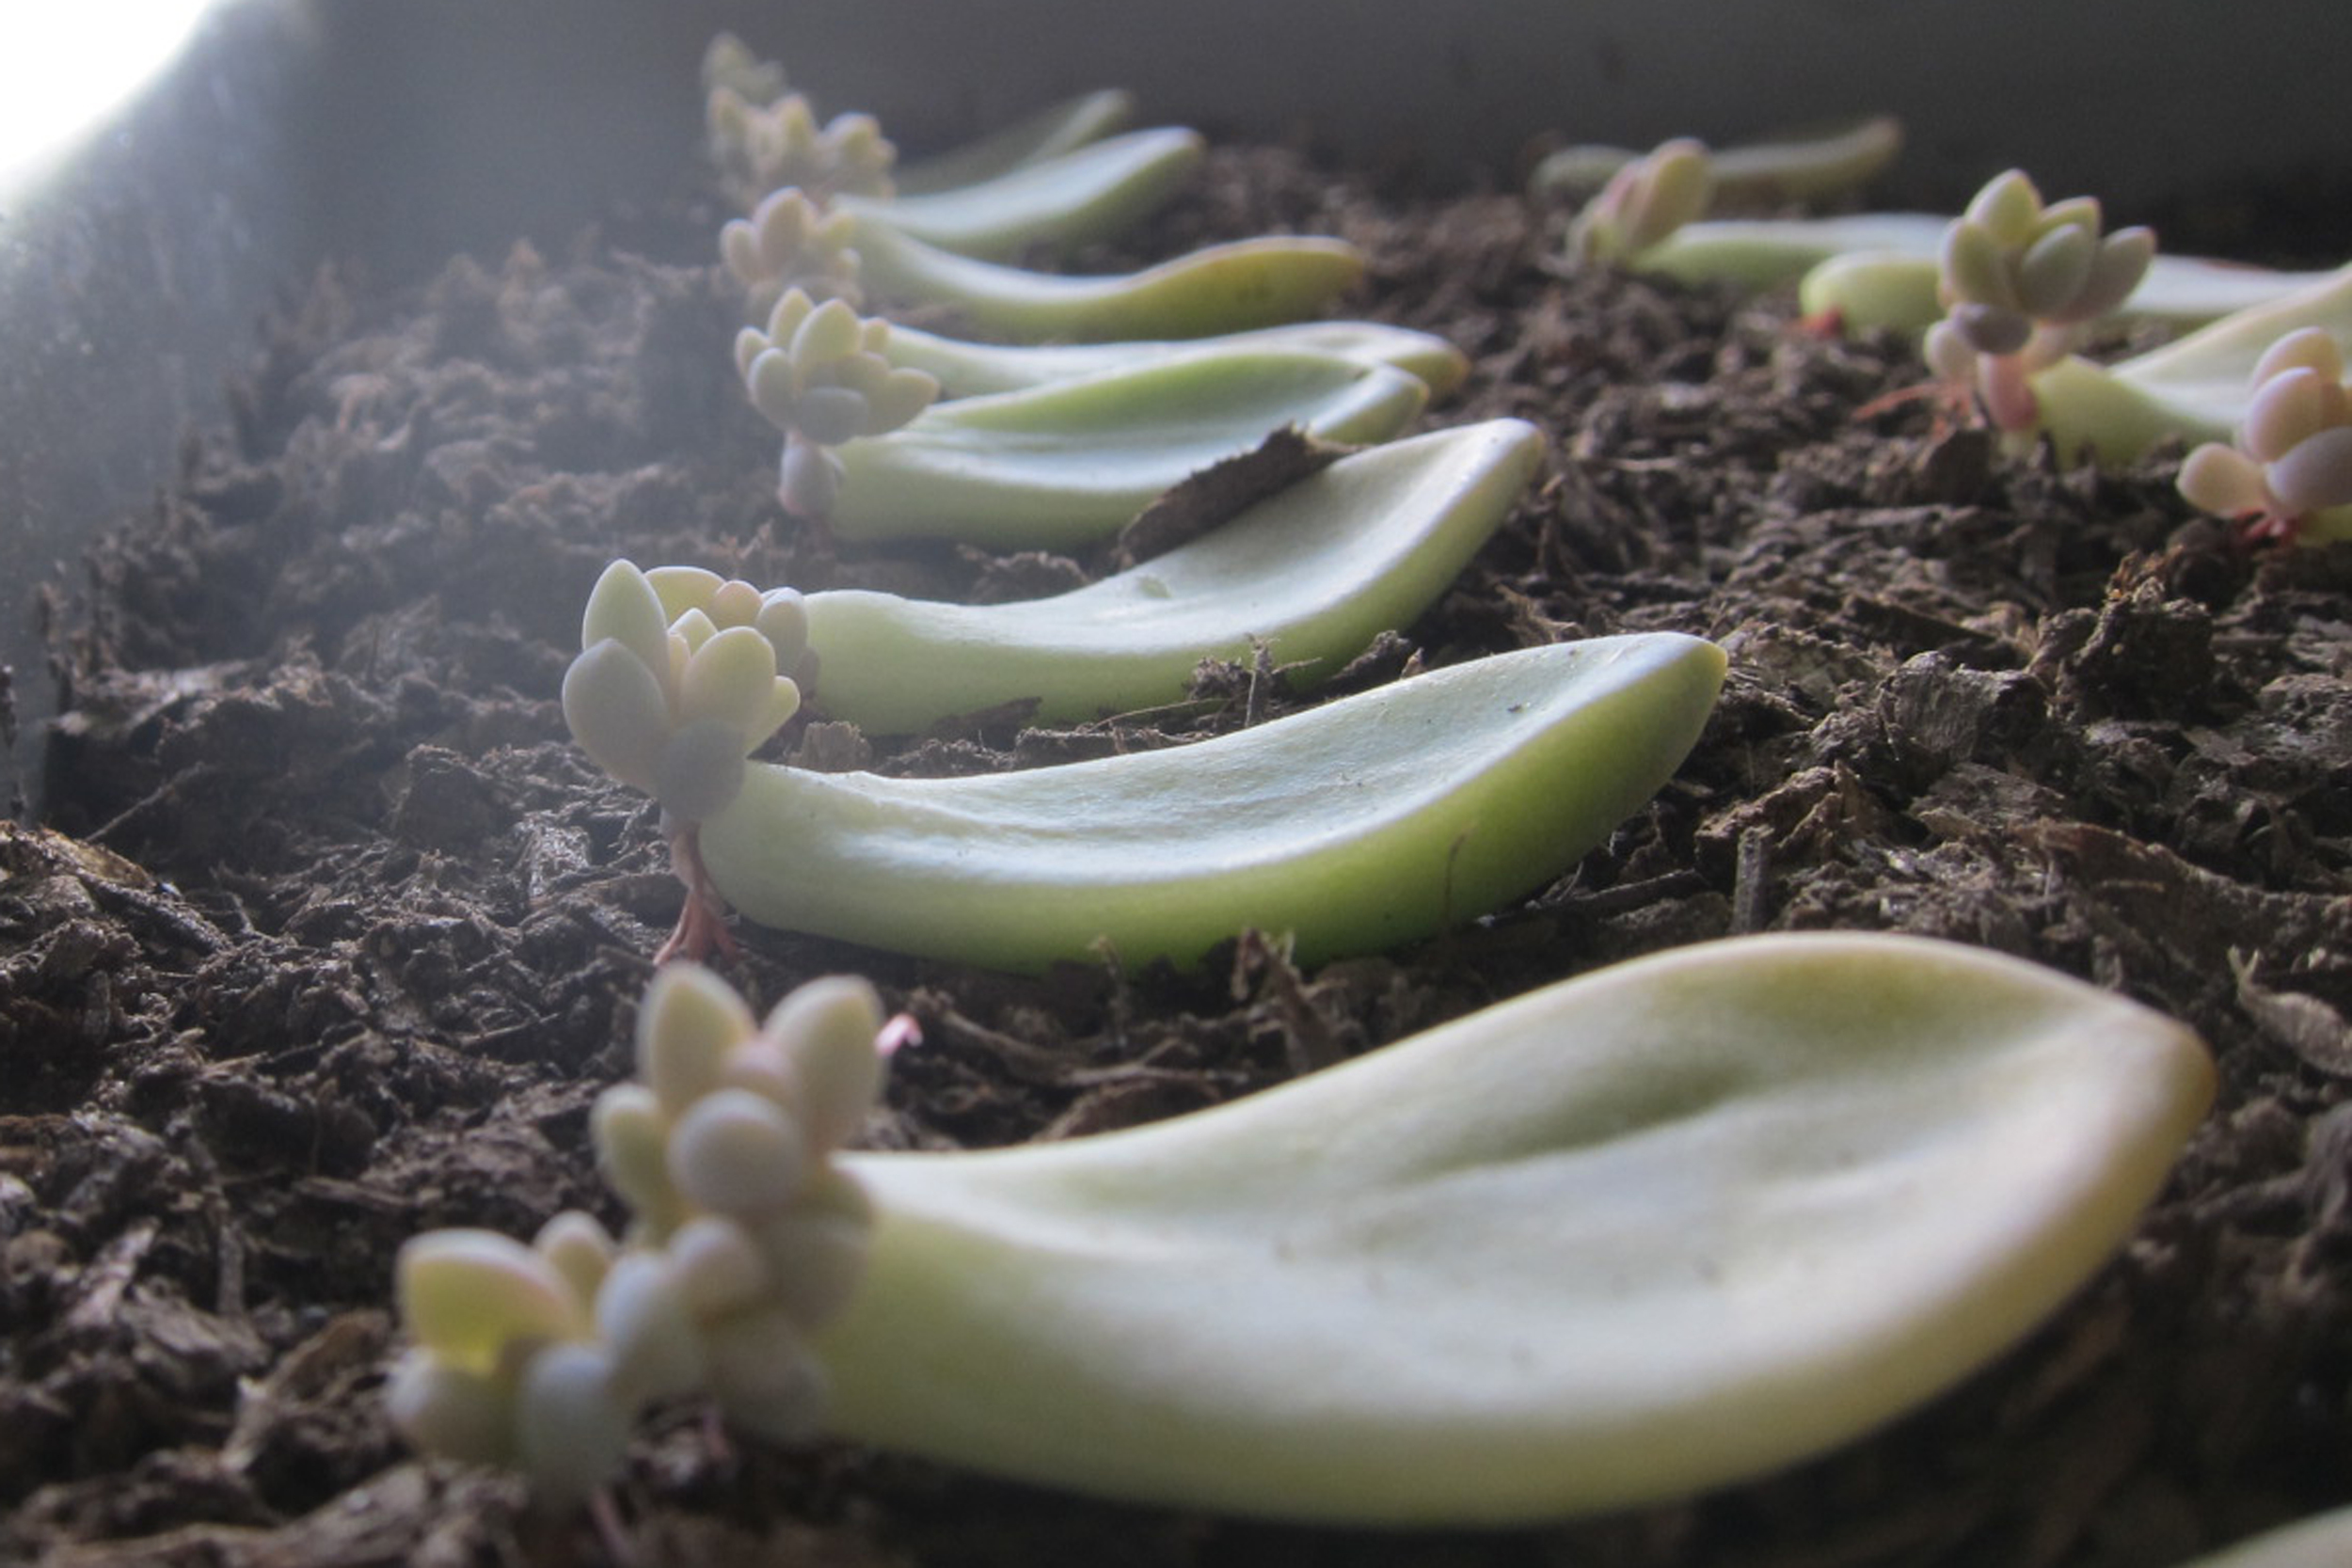 Propagating Succulents — Needles + Leaves